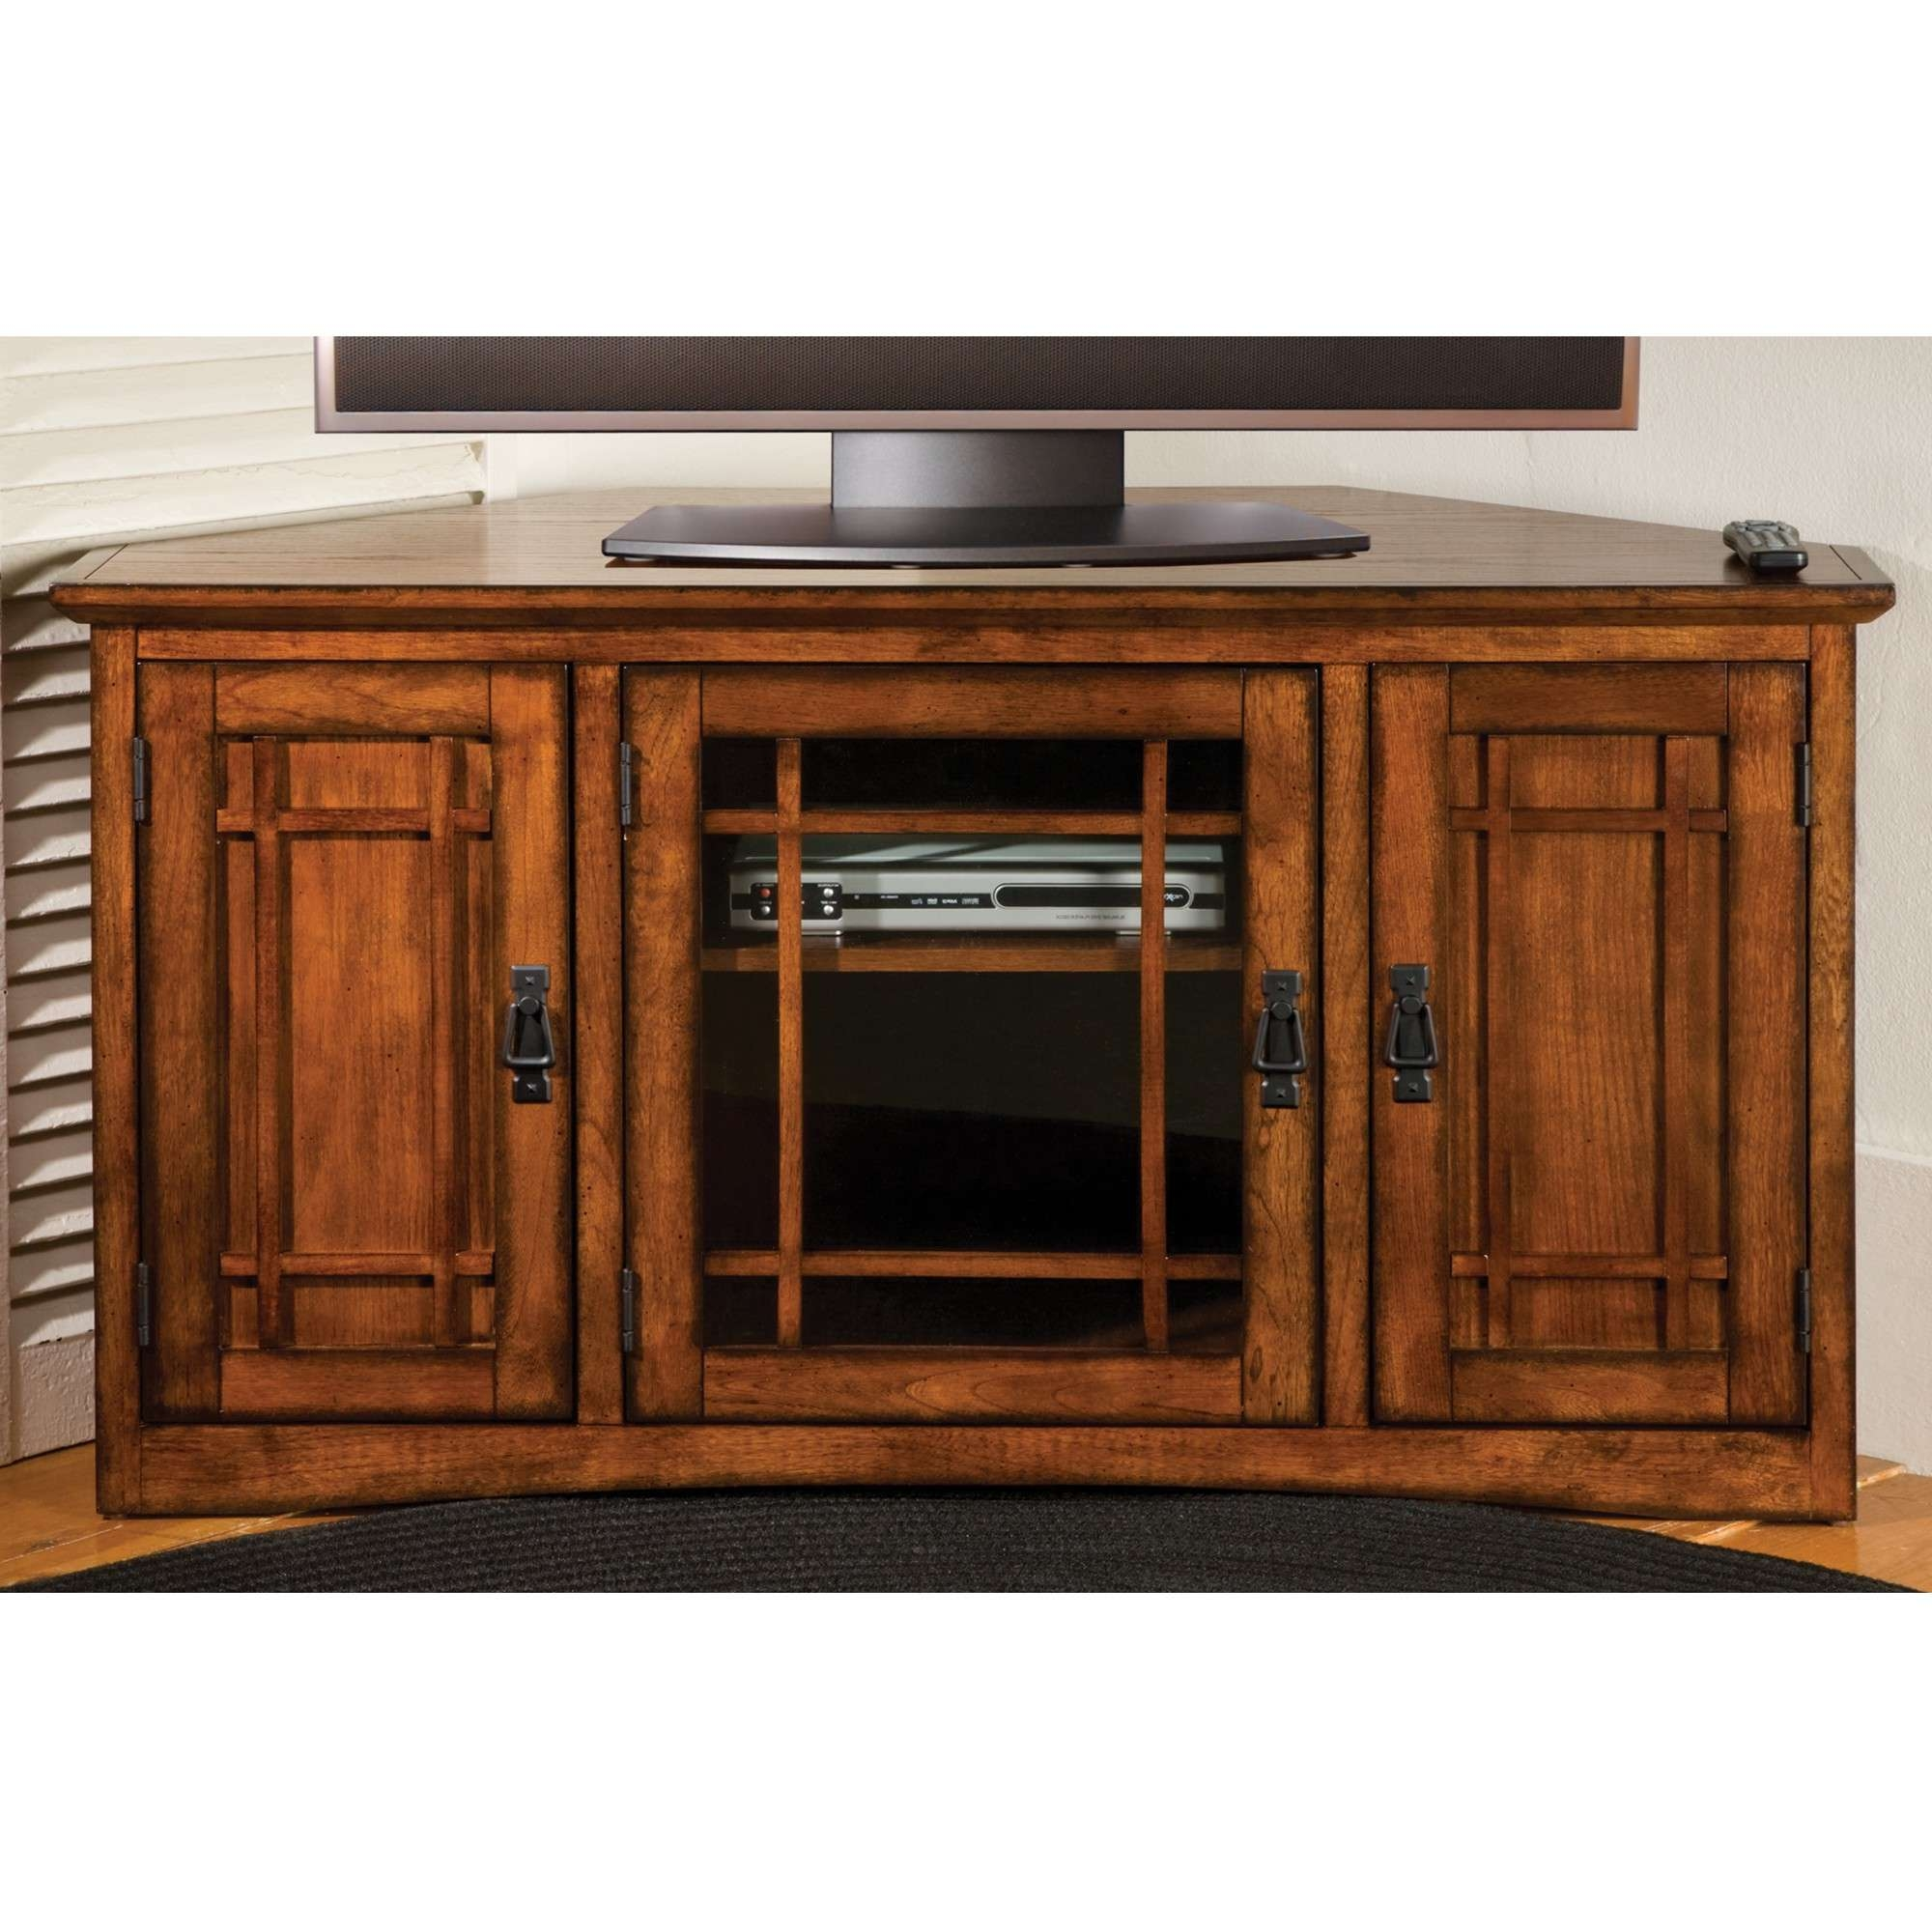 Mission Corner Tv Cabinet | Sturbridge Yankee Workshop Within Corner Tv Cabinets With Glass Doors (View 10 of 20)